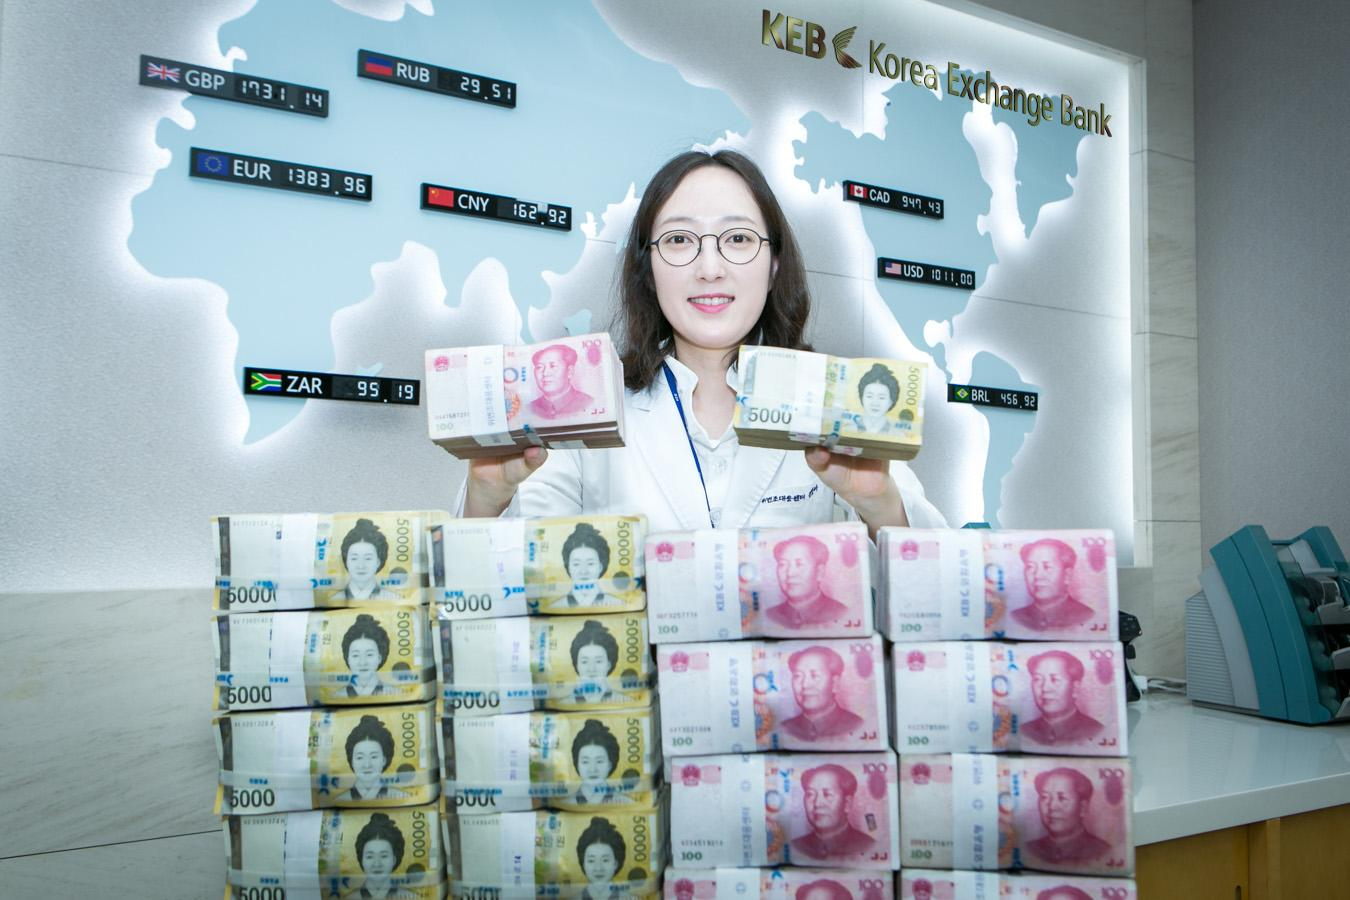 A bank employee displays both Korean won (left) and Chinese yuan (right). (Photo via Korea Exchange Bank)